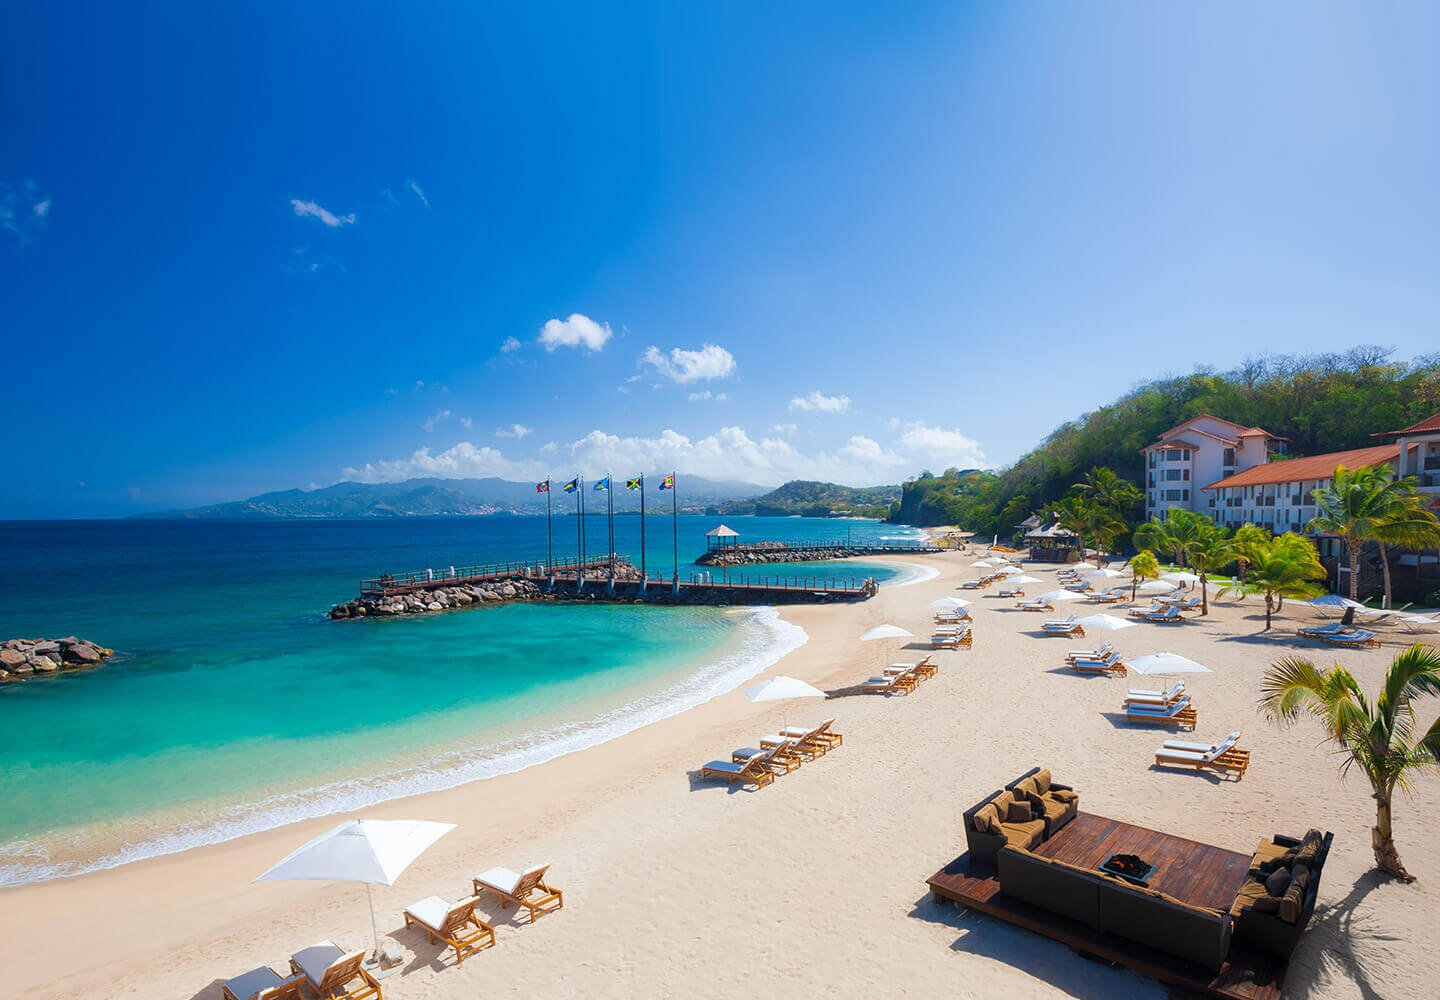 Sandals LaSource Grenada - All Inclusive Vacations